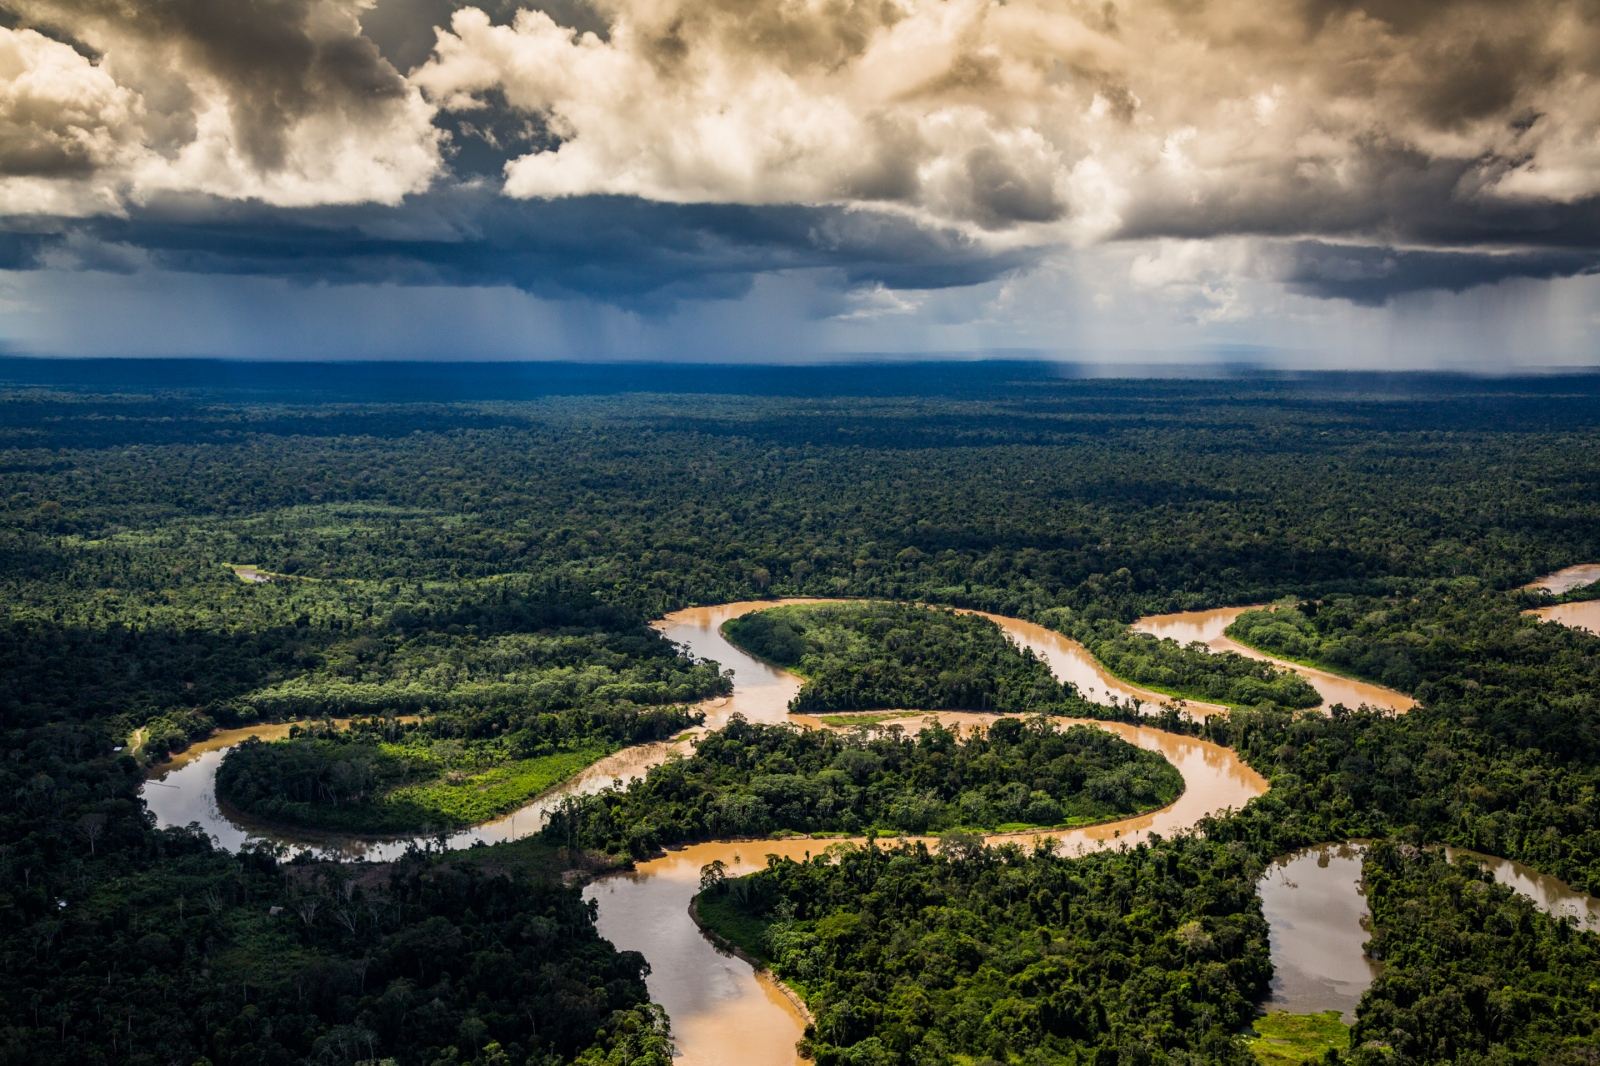 Peruvian Amazon. Alto Purús National Park, Peru.